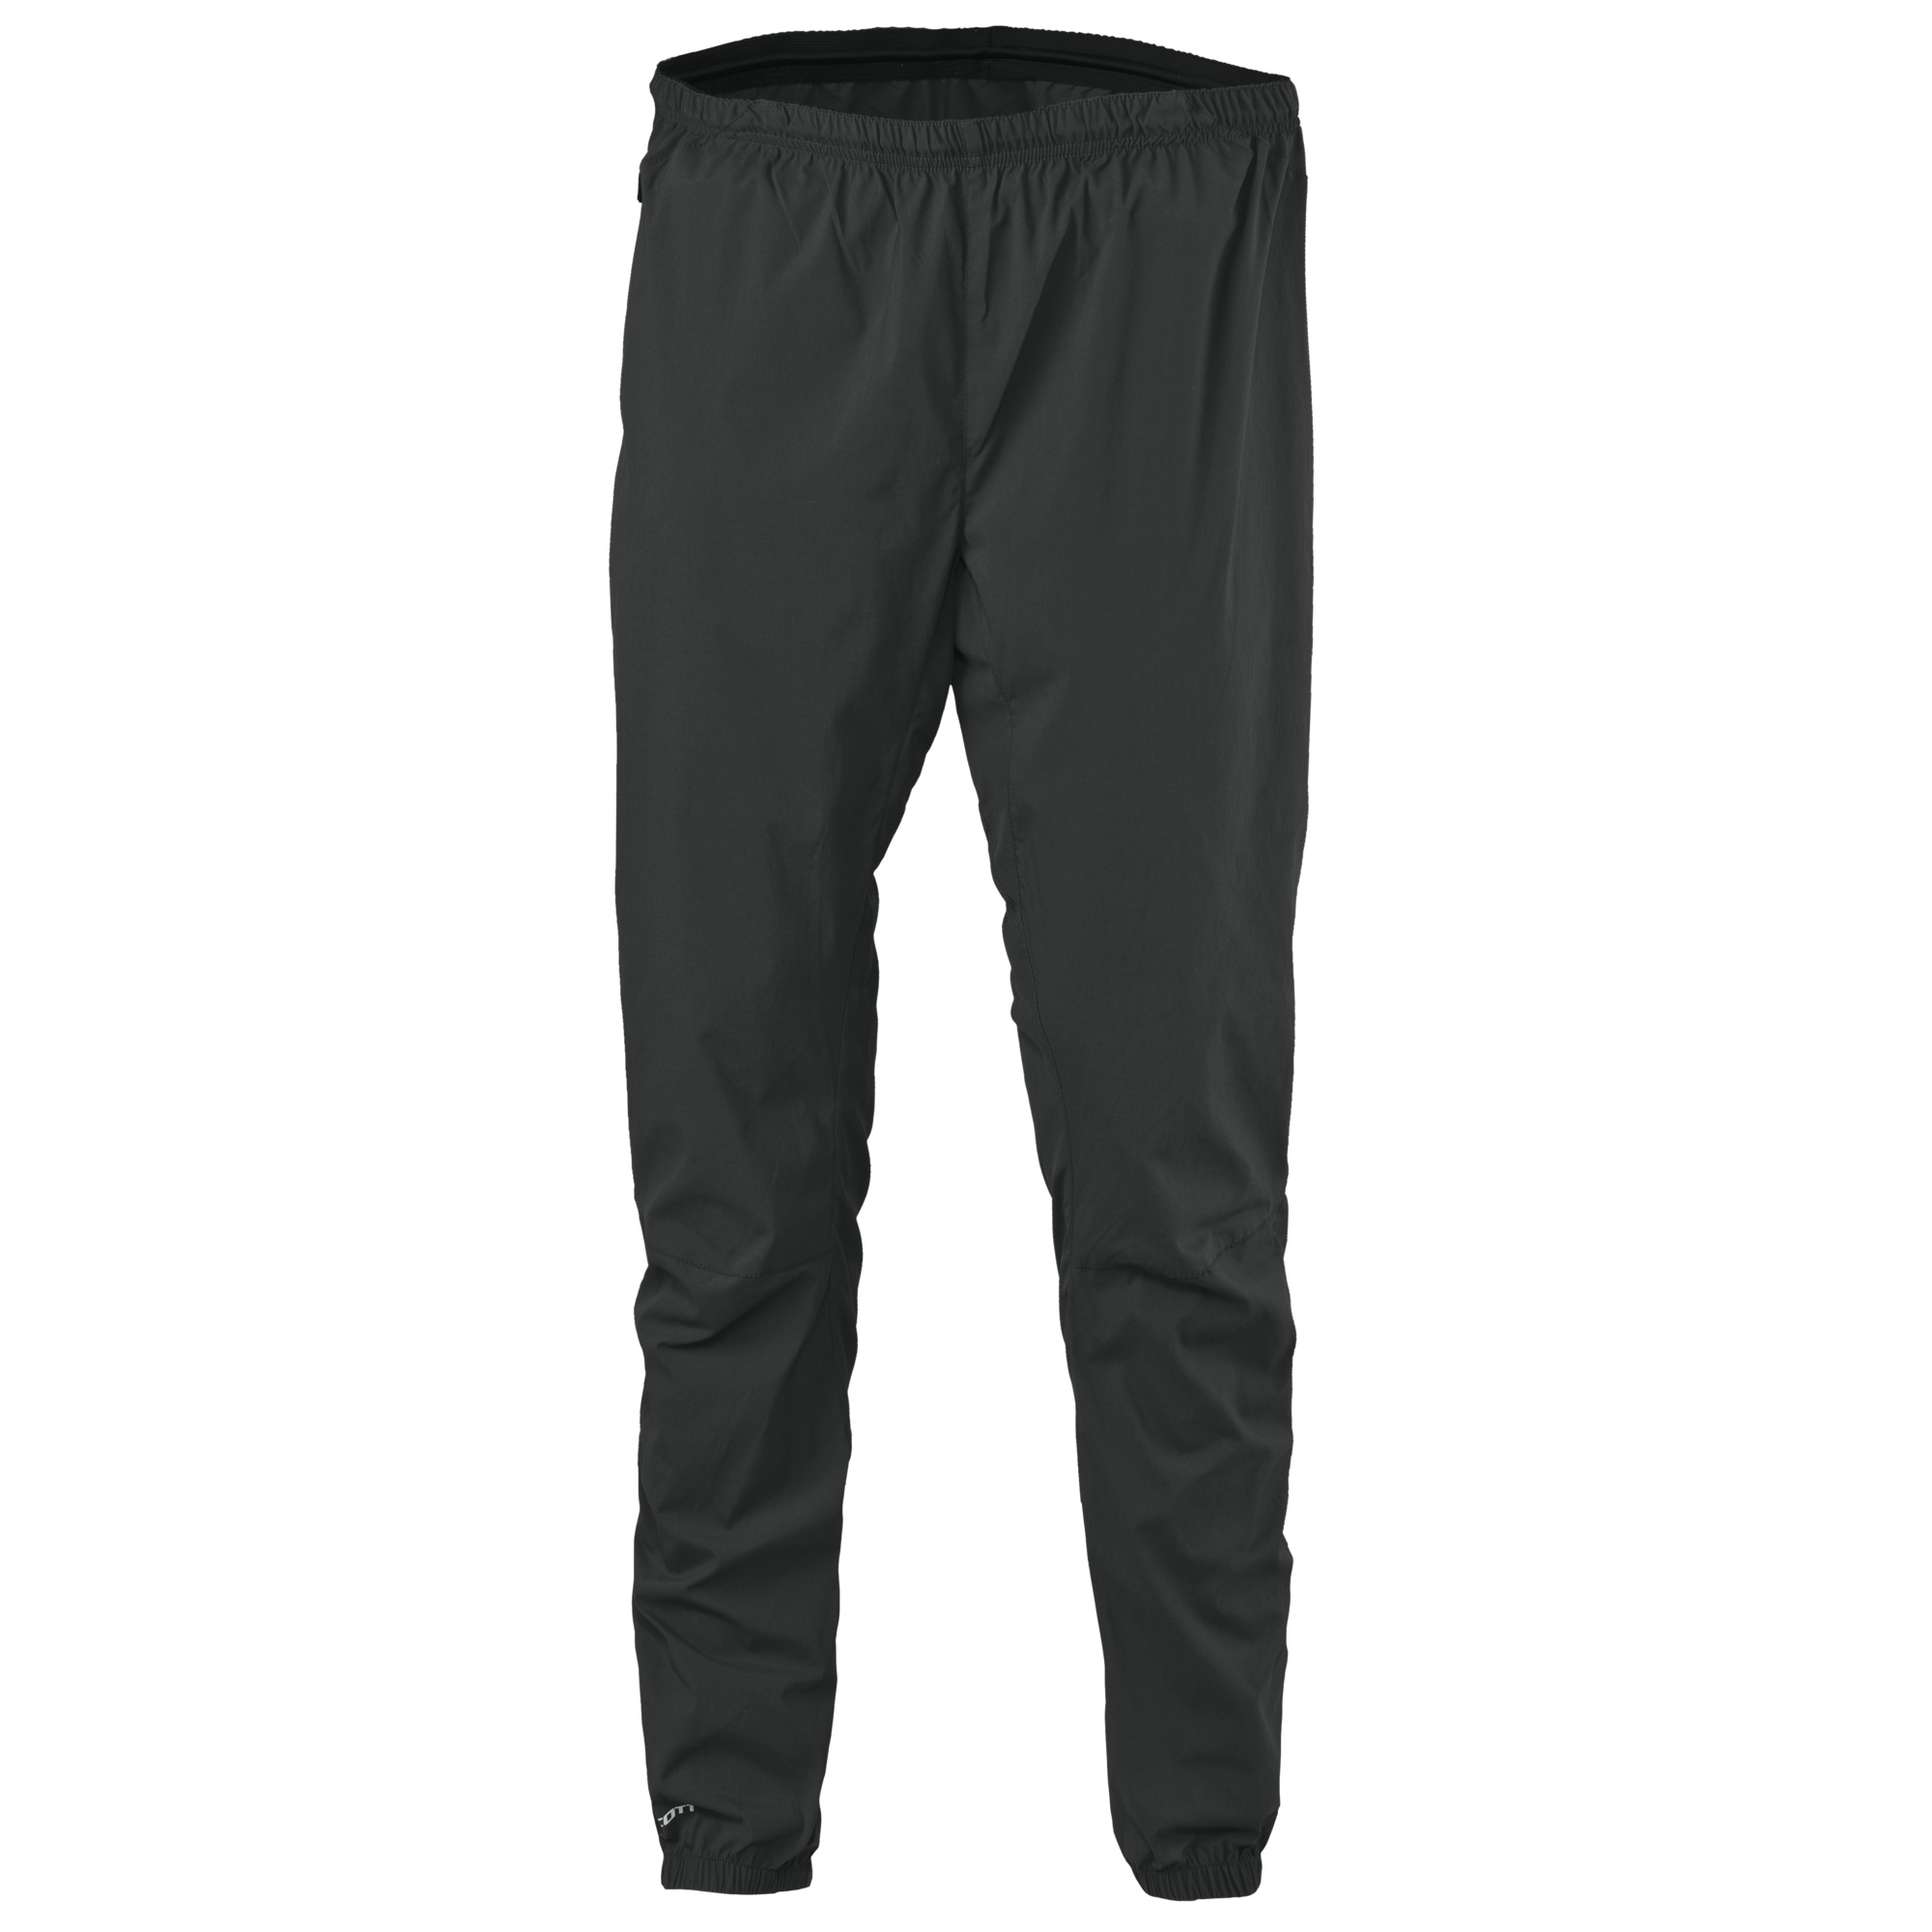 SCOTT Trail RUN 10 semi tight Women's Pants